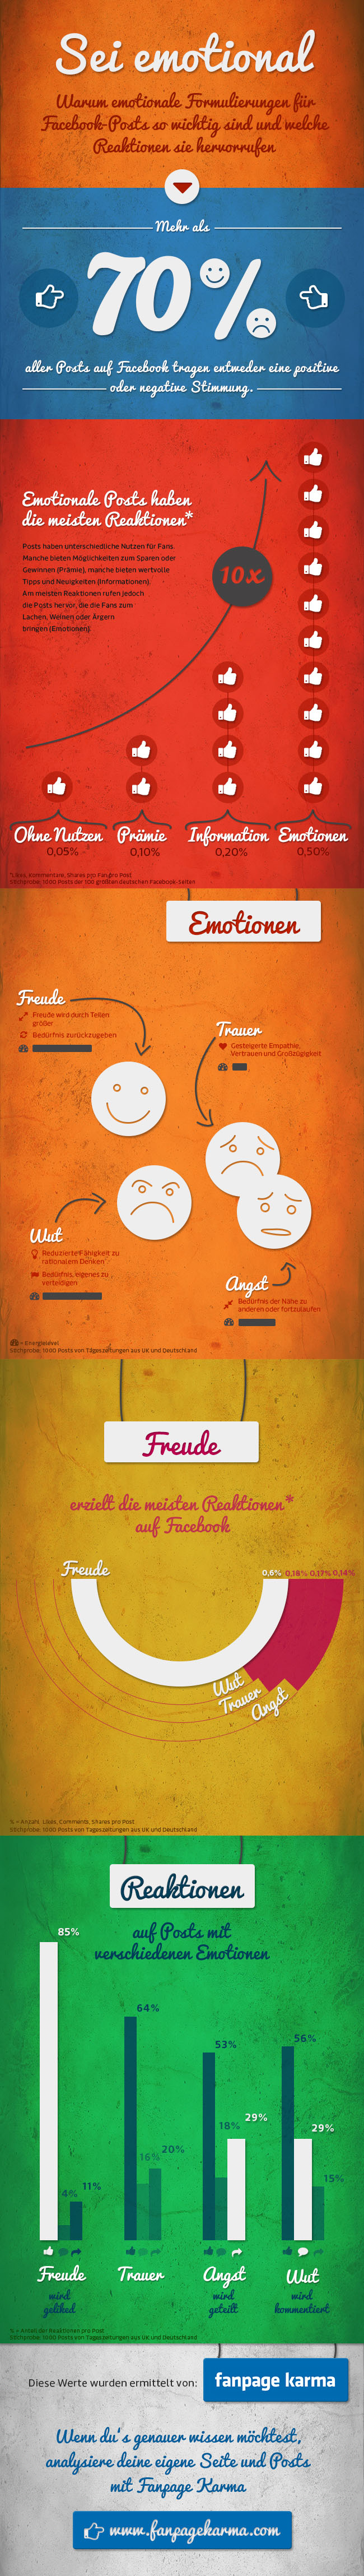 141125 Infografik Emotionen_Posts